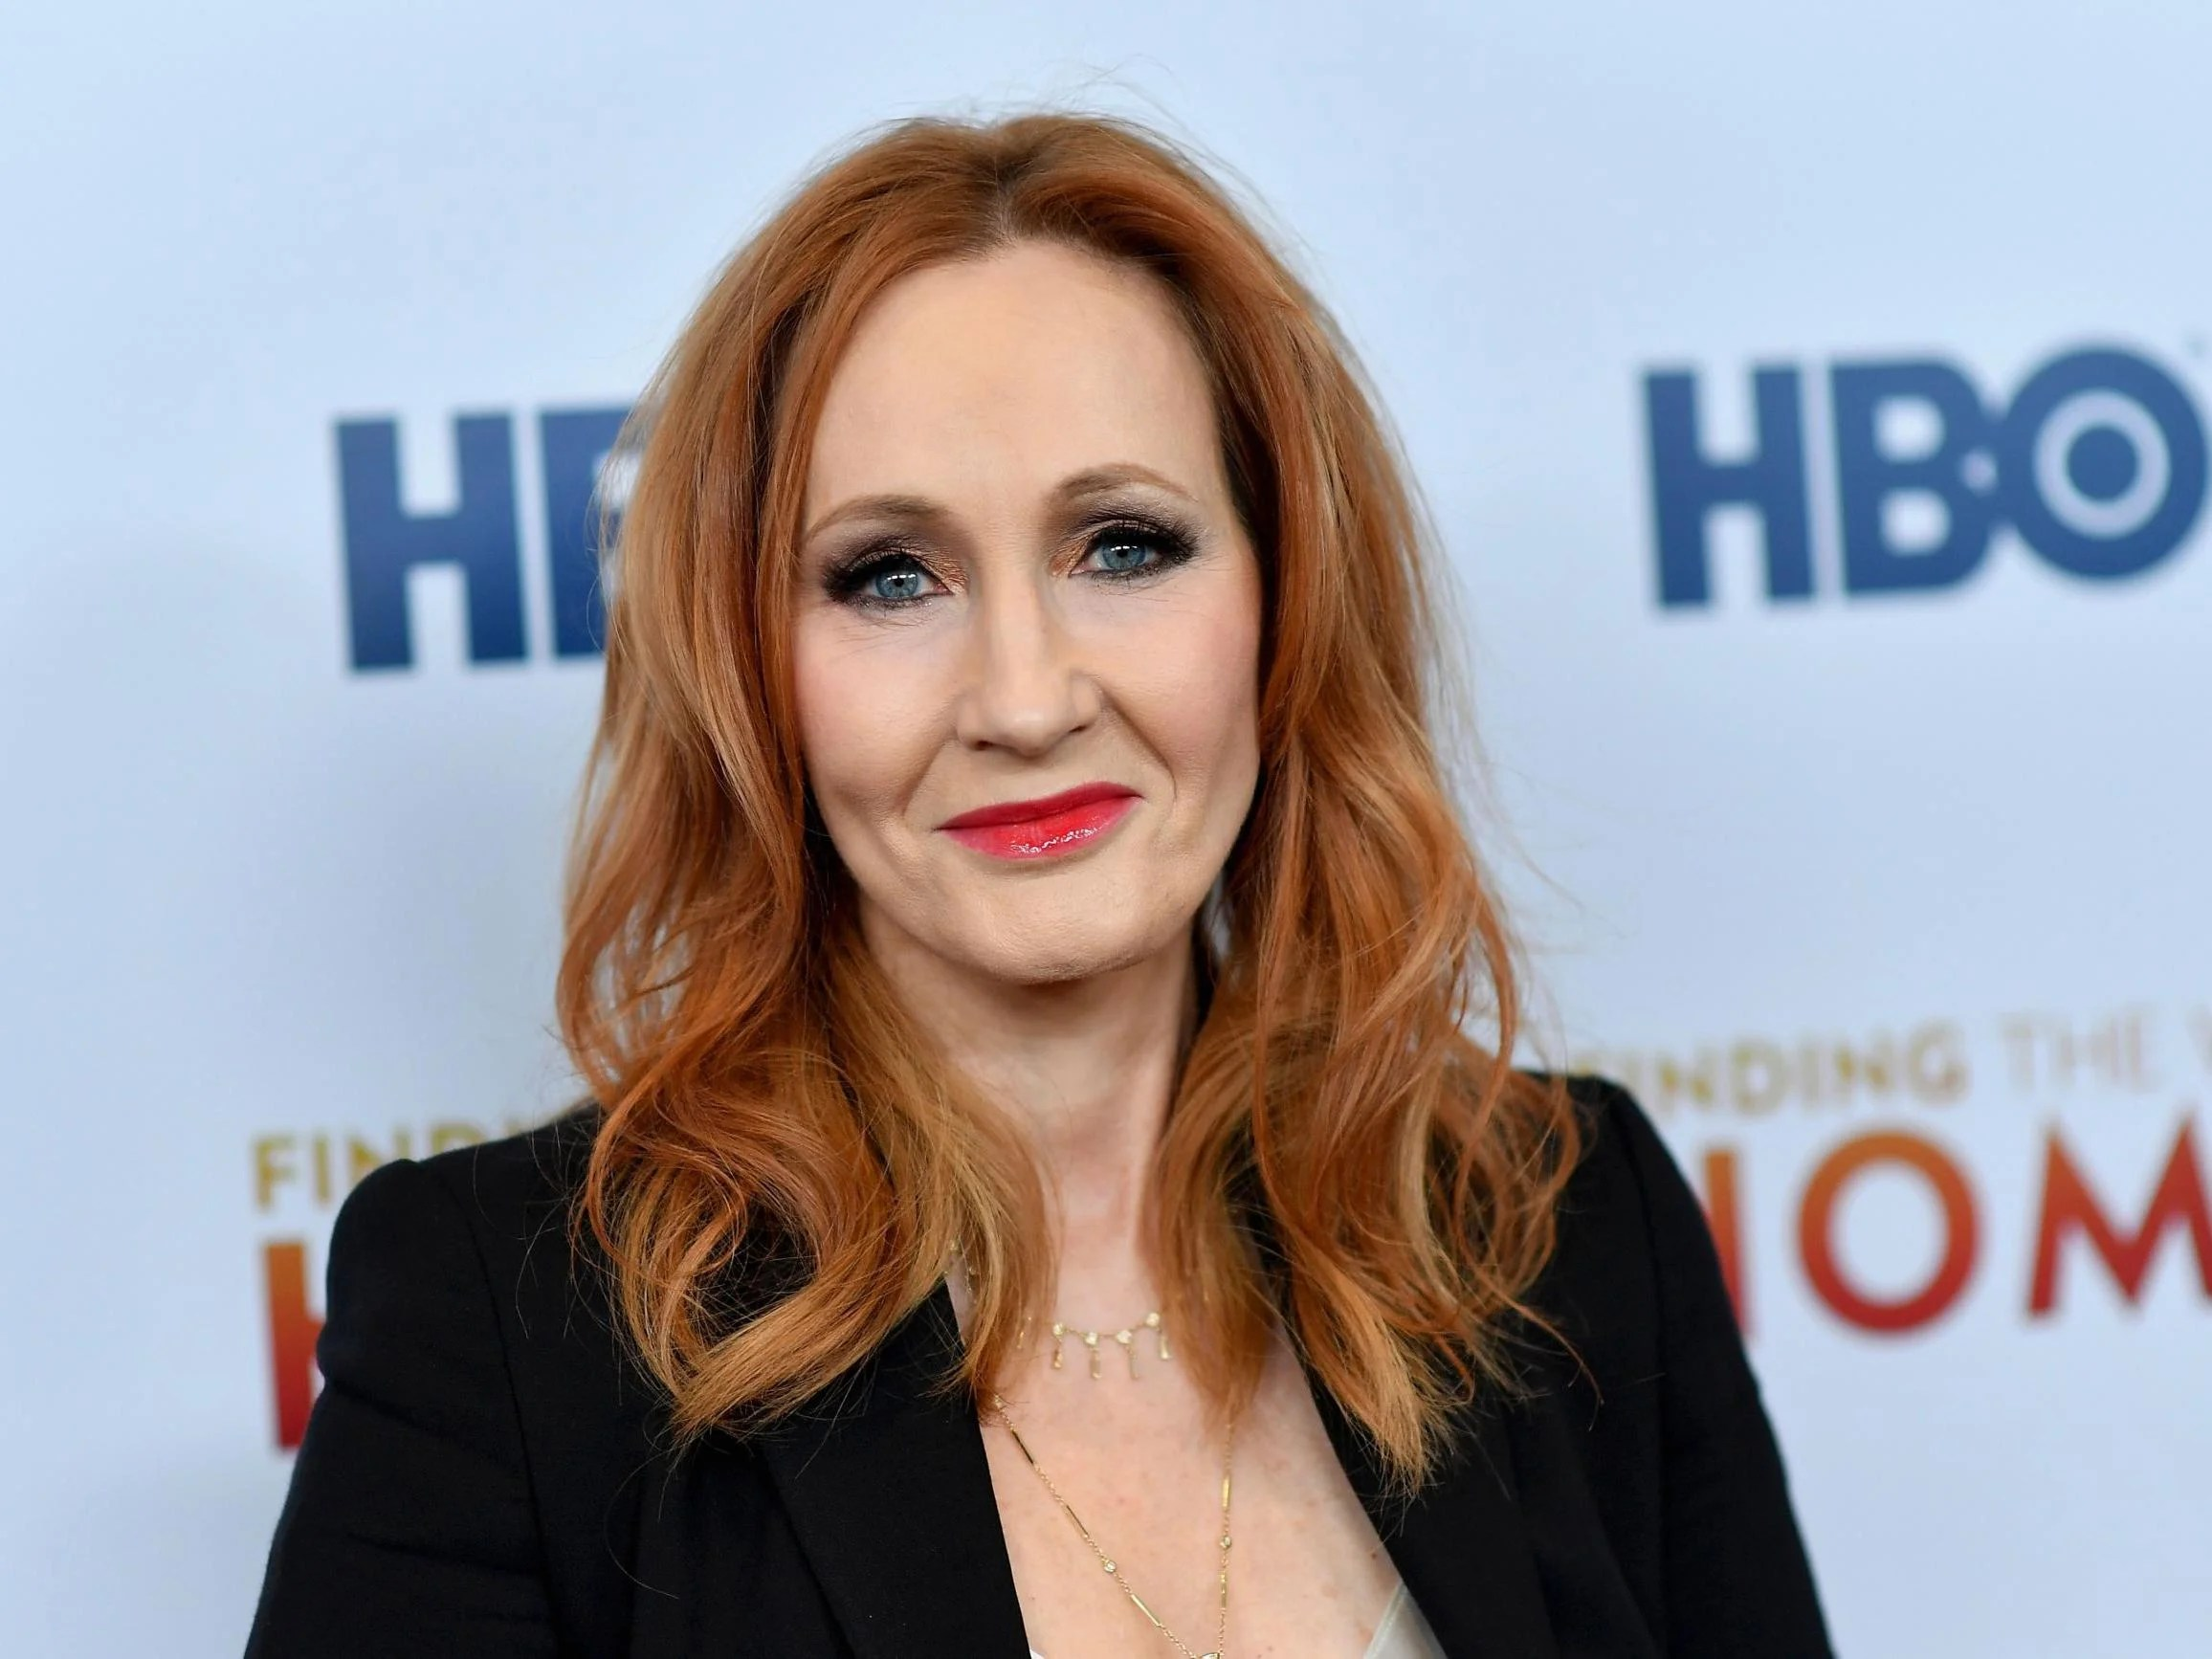 Harry Potter fan sites distance themselves from JK Rowling over transgender comments 6